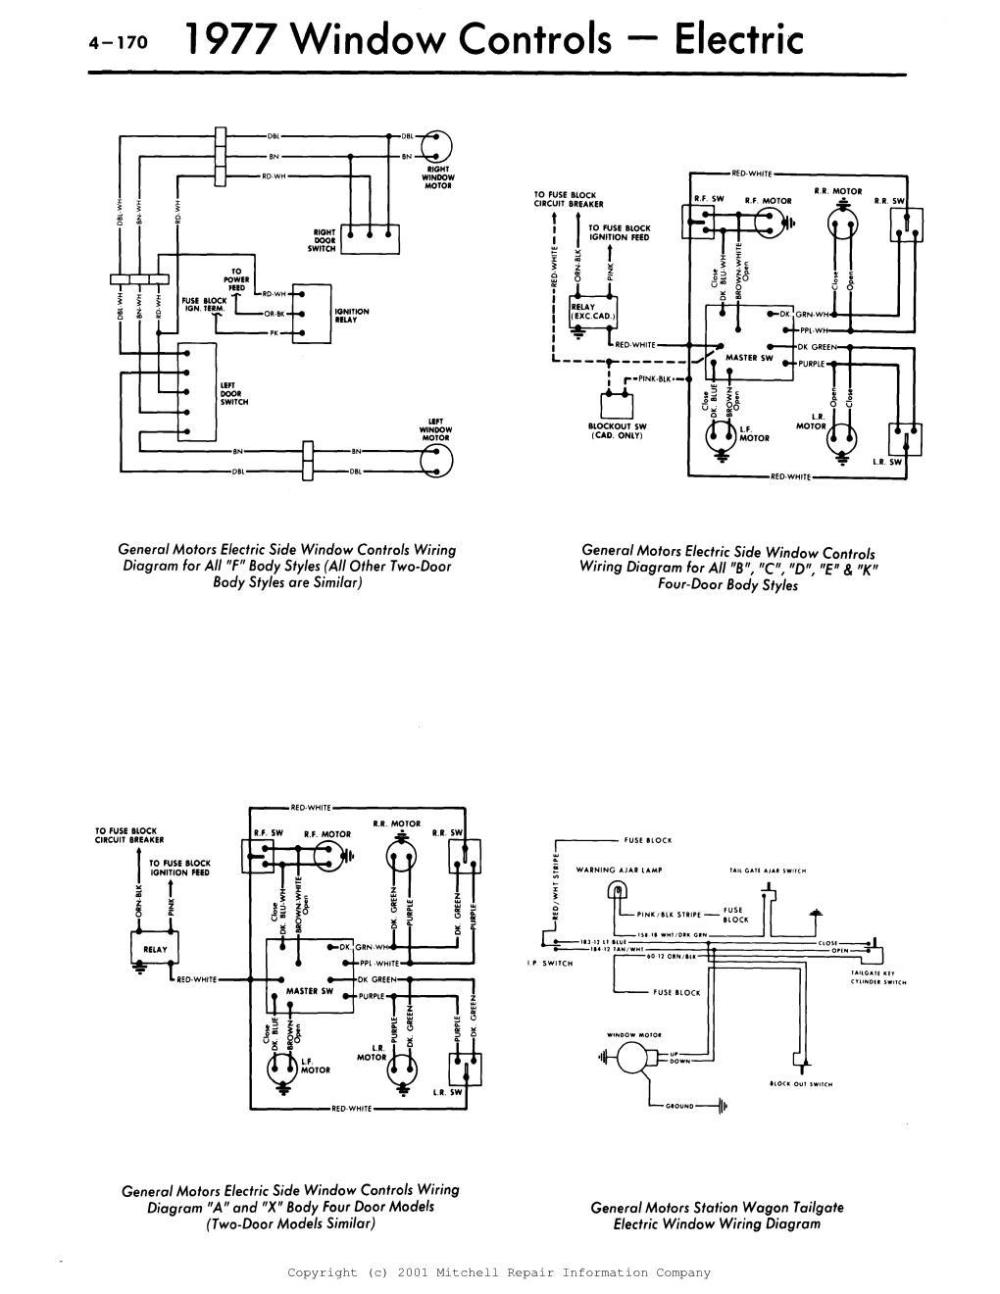 medium resolution of here are some wiring diagrams for you hopefully these help 1977 gm window controls